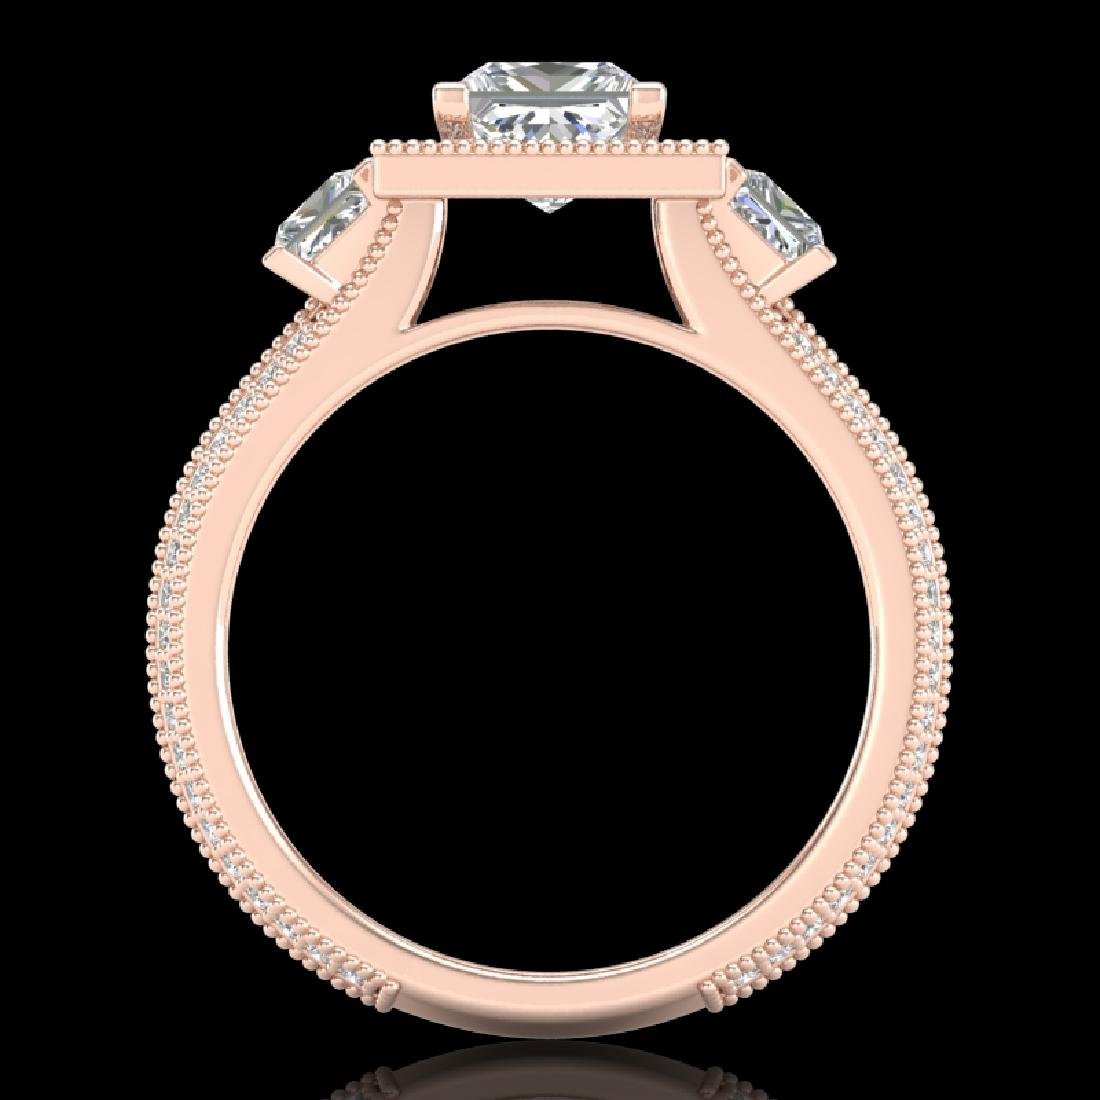 2.5 CTW Princess VS/SI Diamond Micro Pave 3 Stone Ring